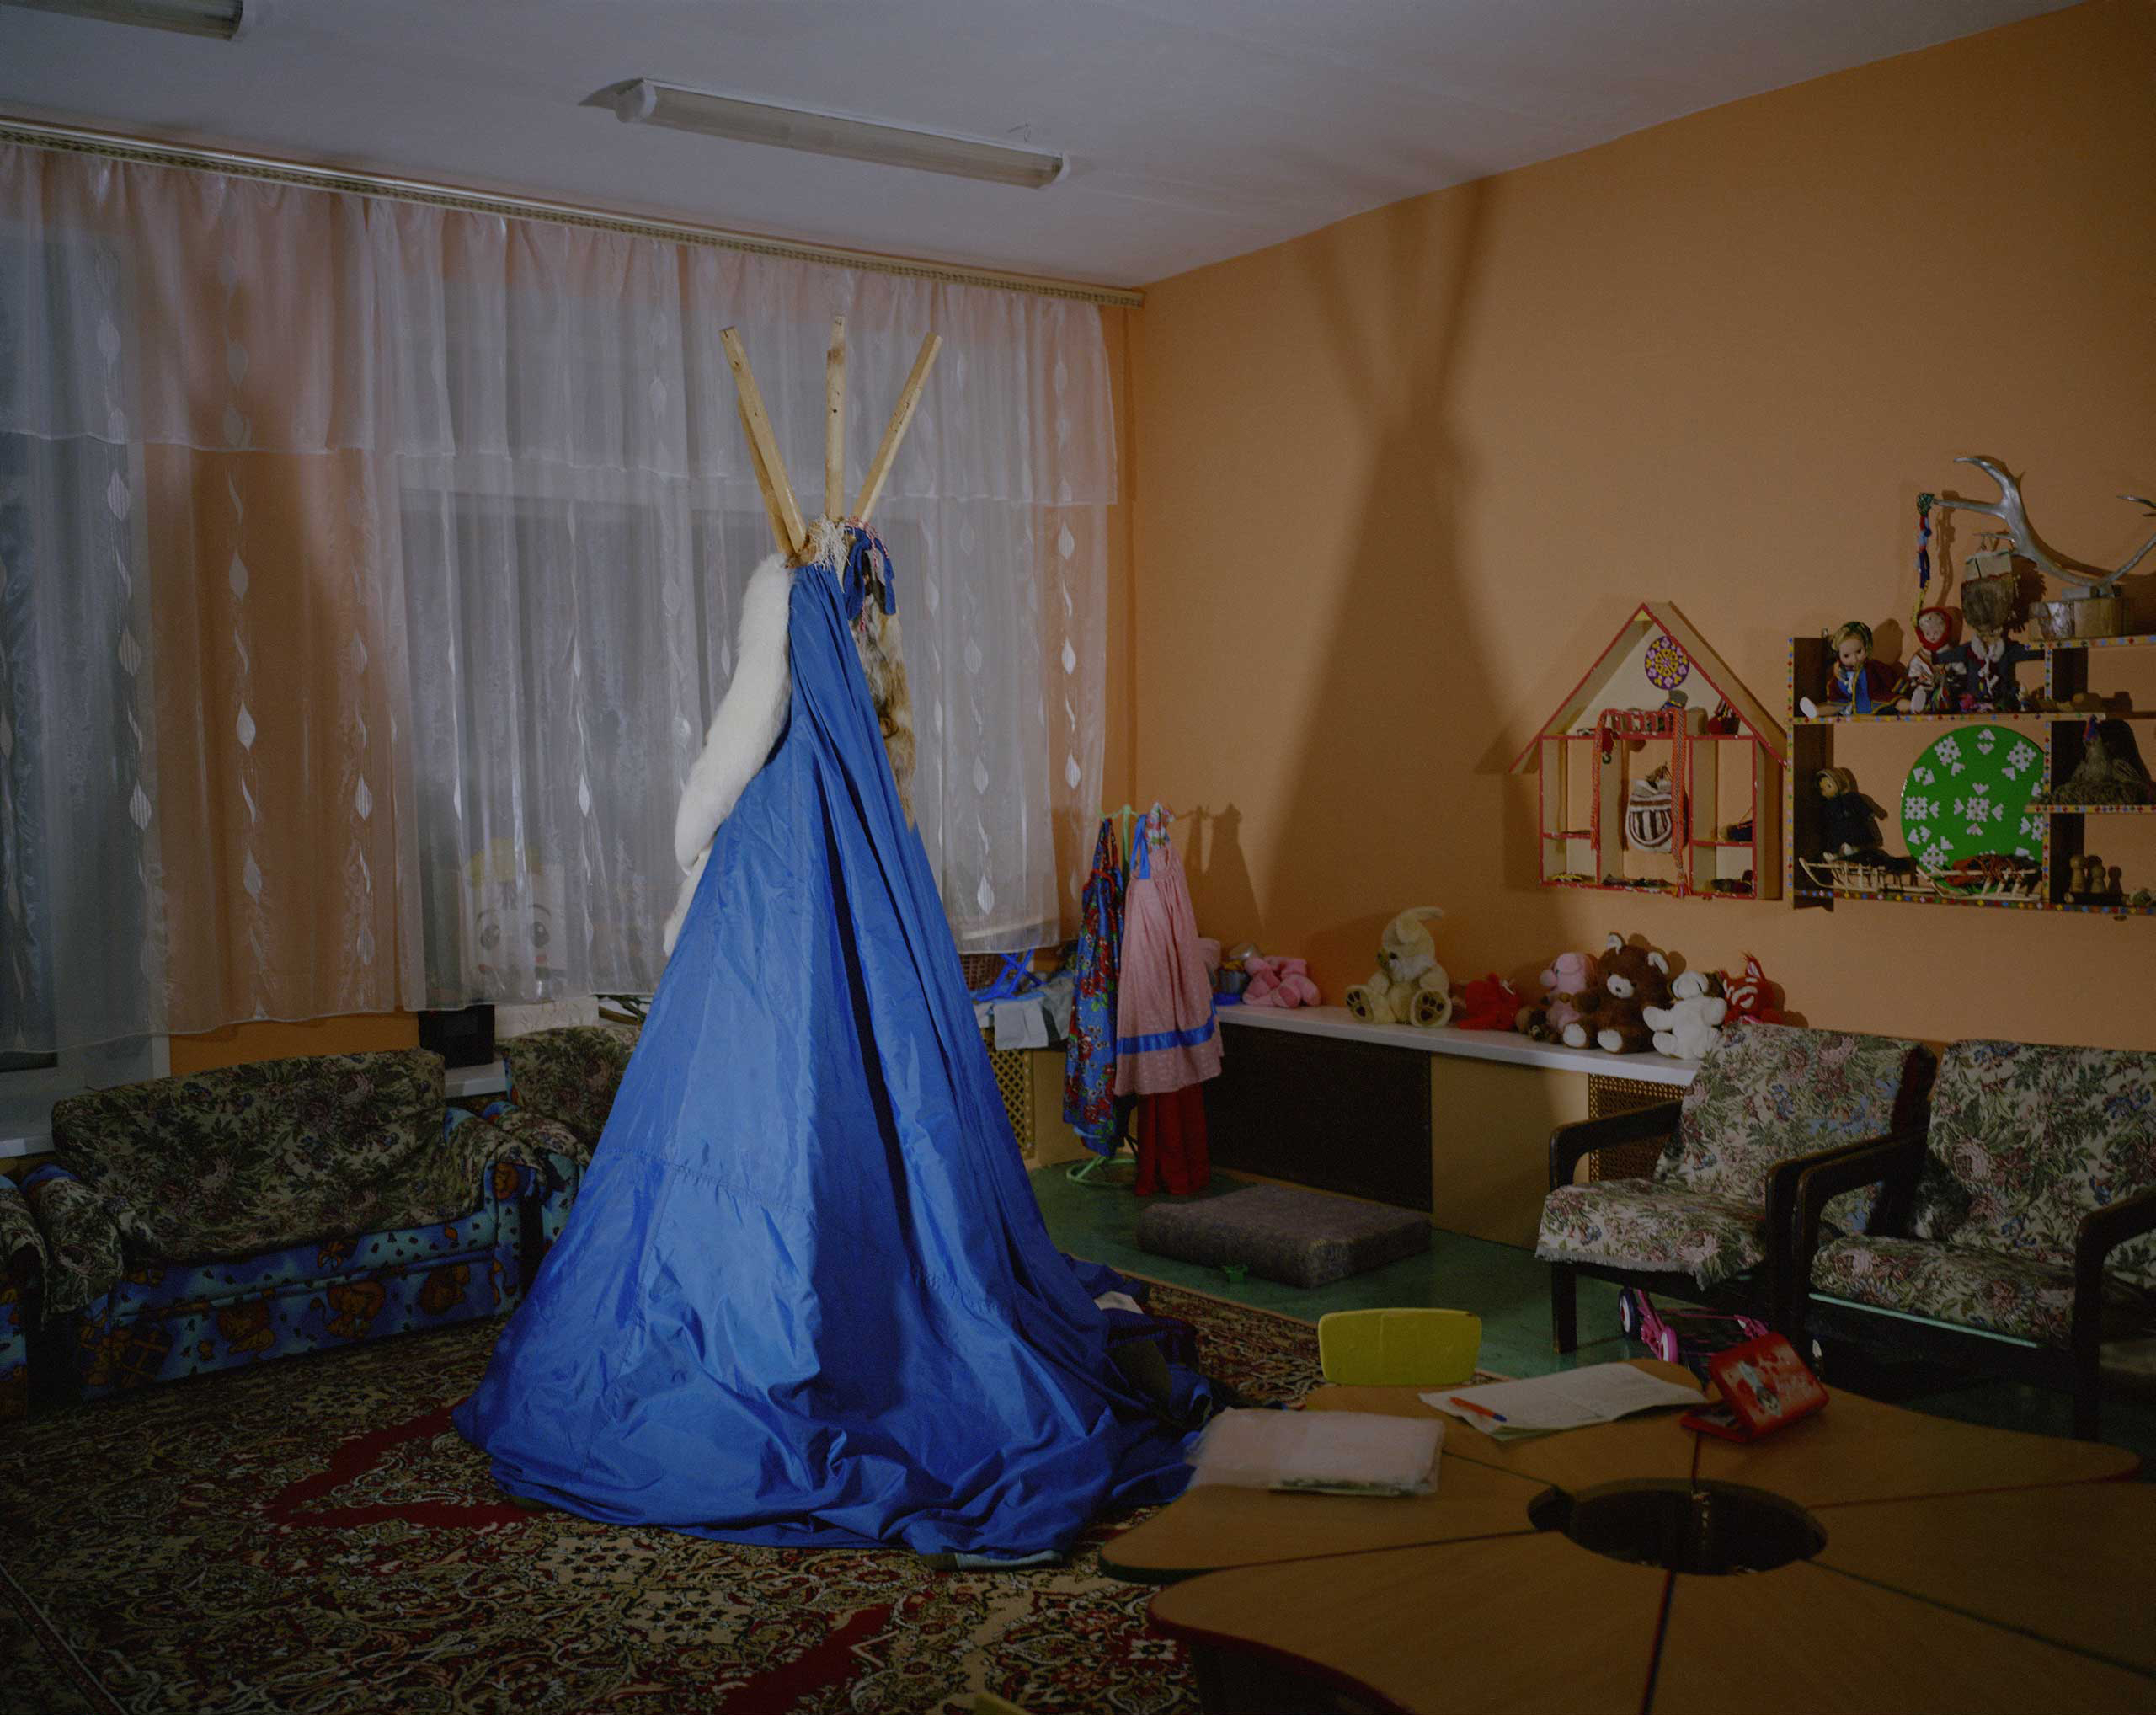 A chum is placed in the playing room. A chum is a traditional mobile tent used by the Nenets people.